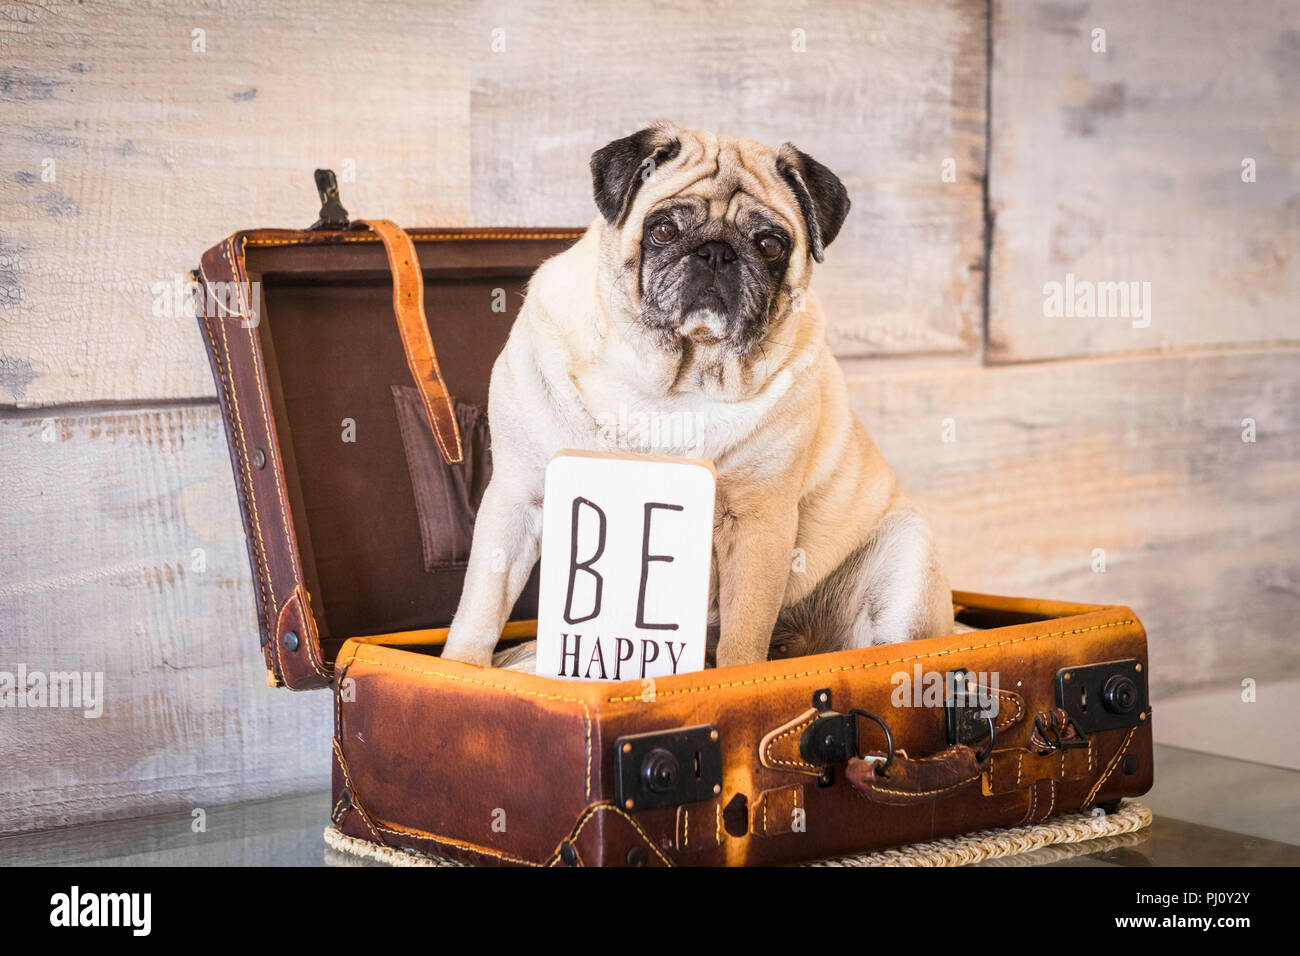 vintage filter and scene with old white pug lay down inside an old carrying case luggage. defocused background ancient style for wallpaper. Be happy c - Stock Image